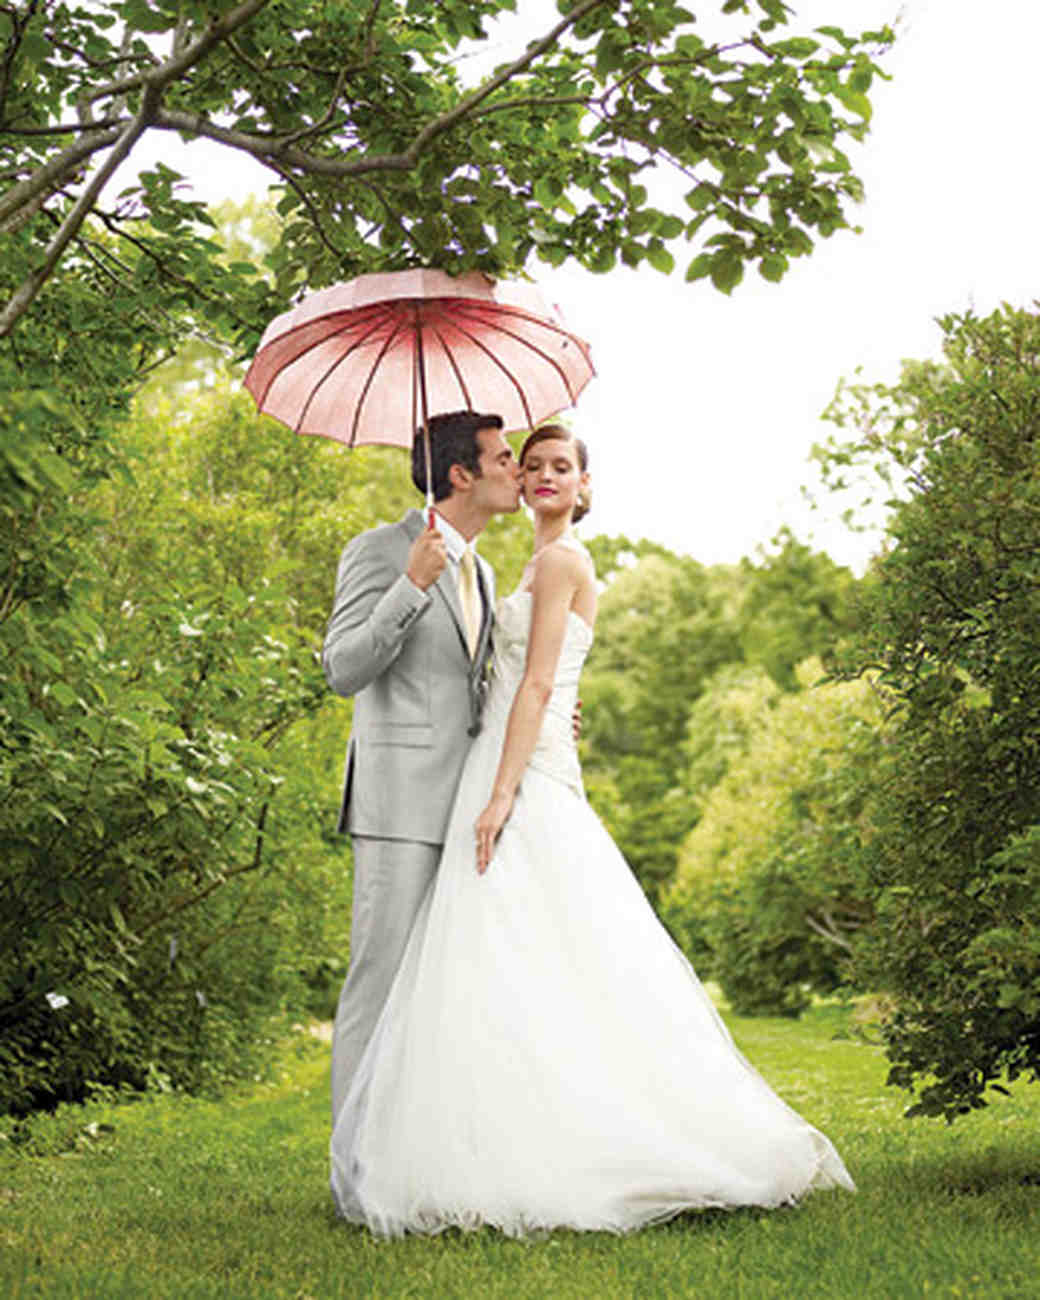 Outdoor Wedding Outfit Ideas: Perfect Gowns For An Outdoor Wedding